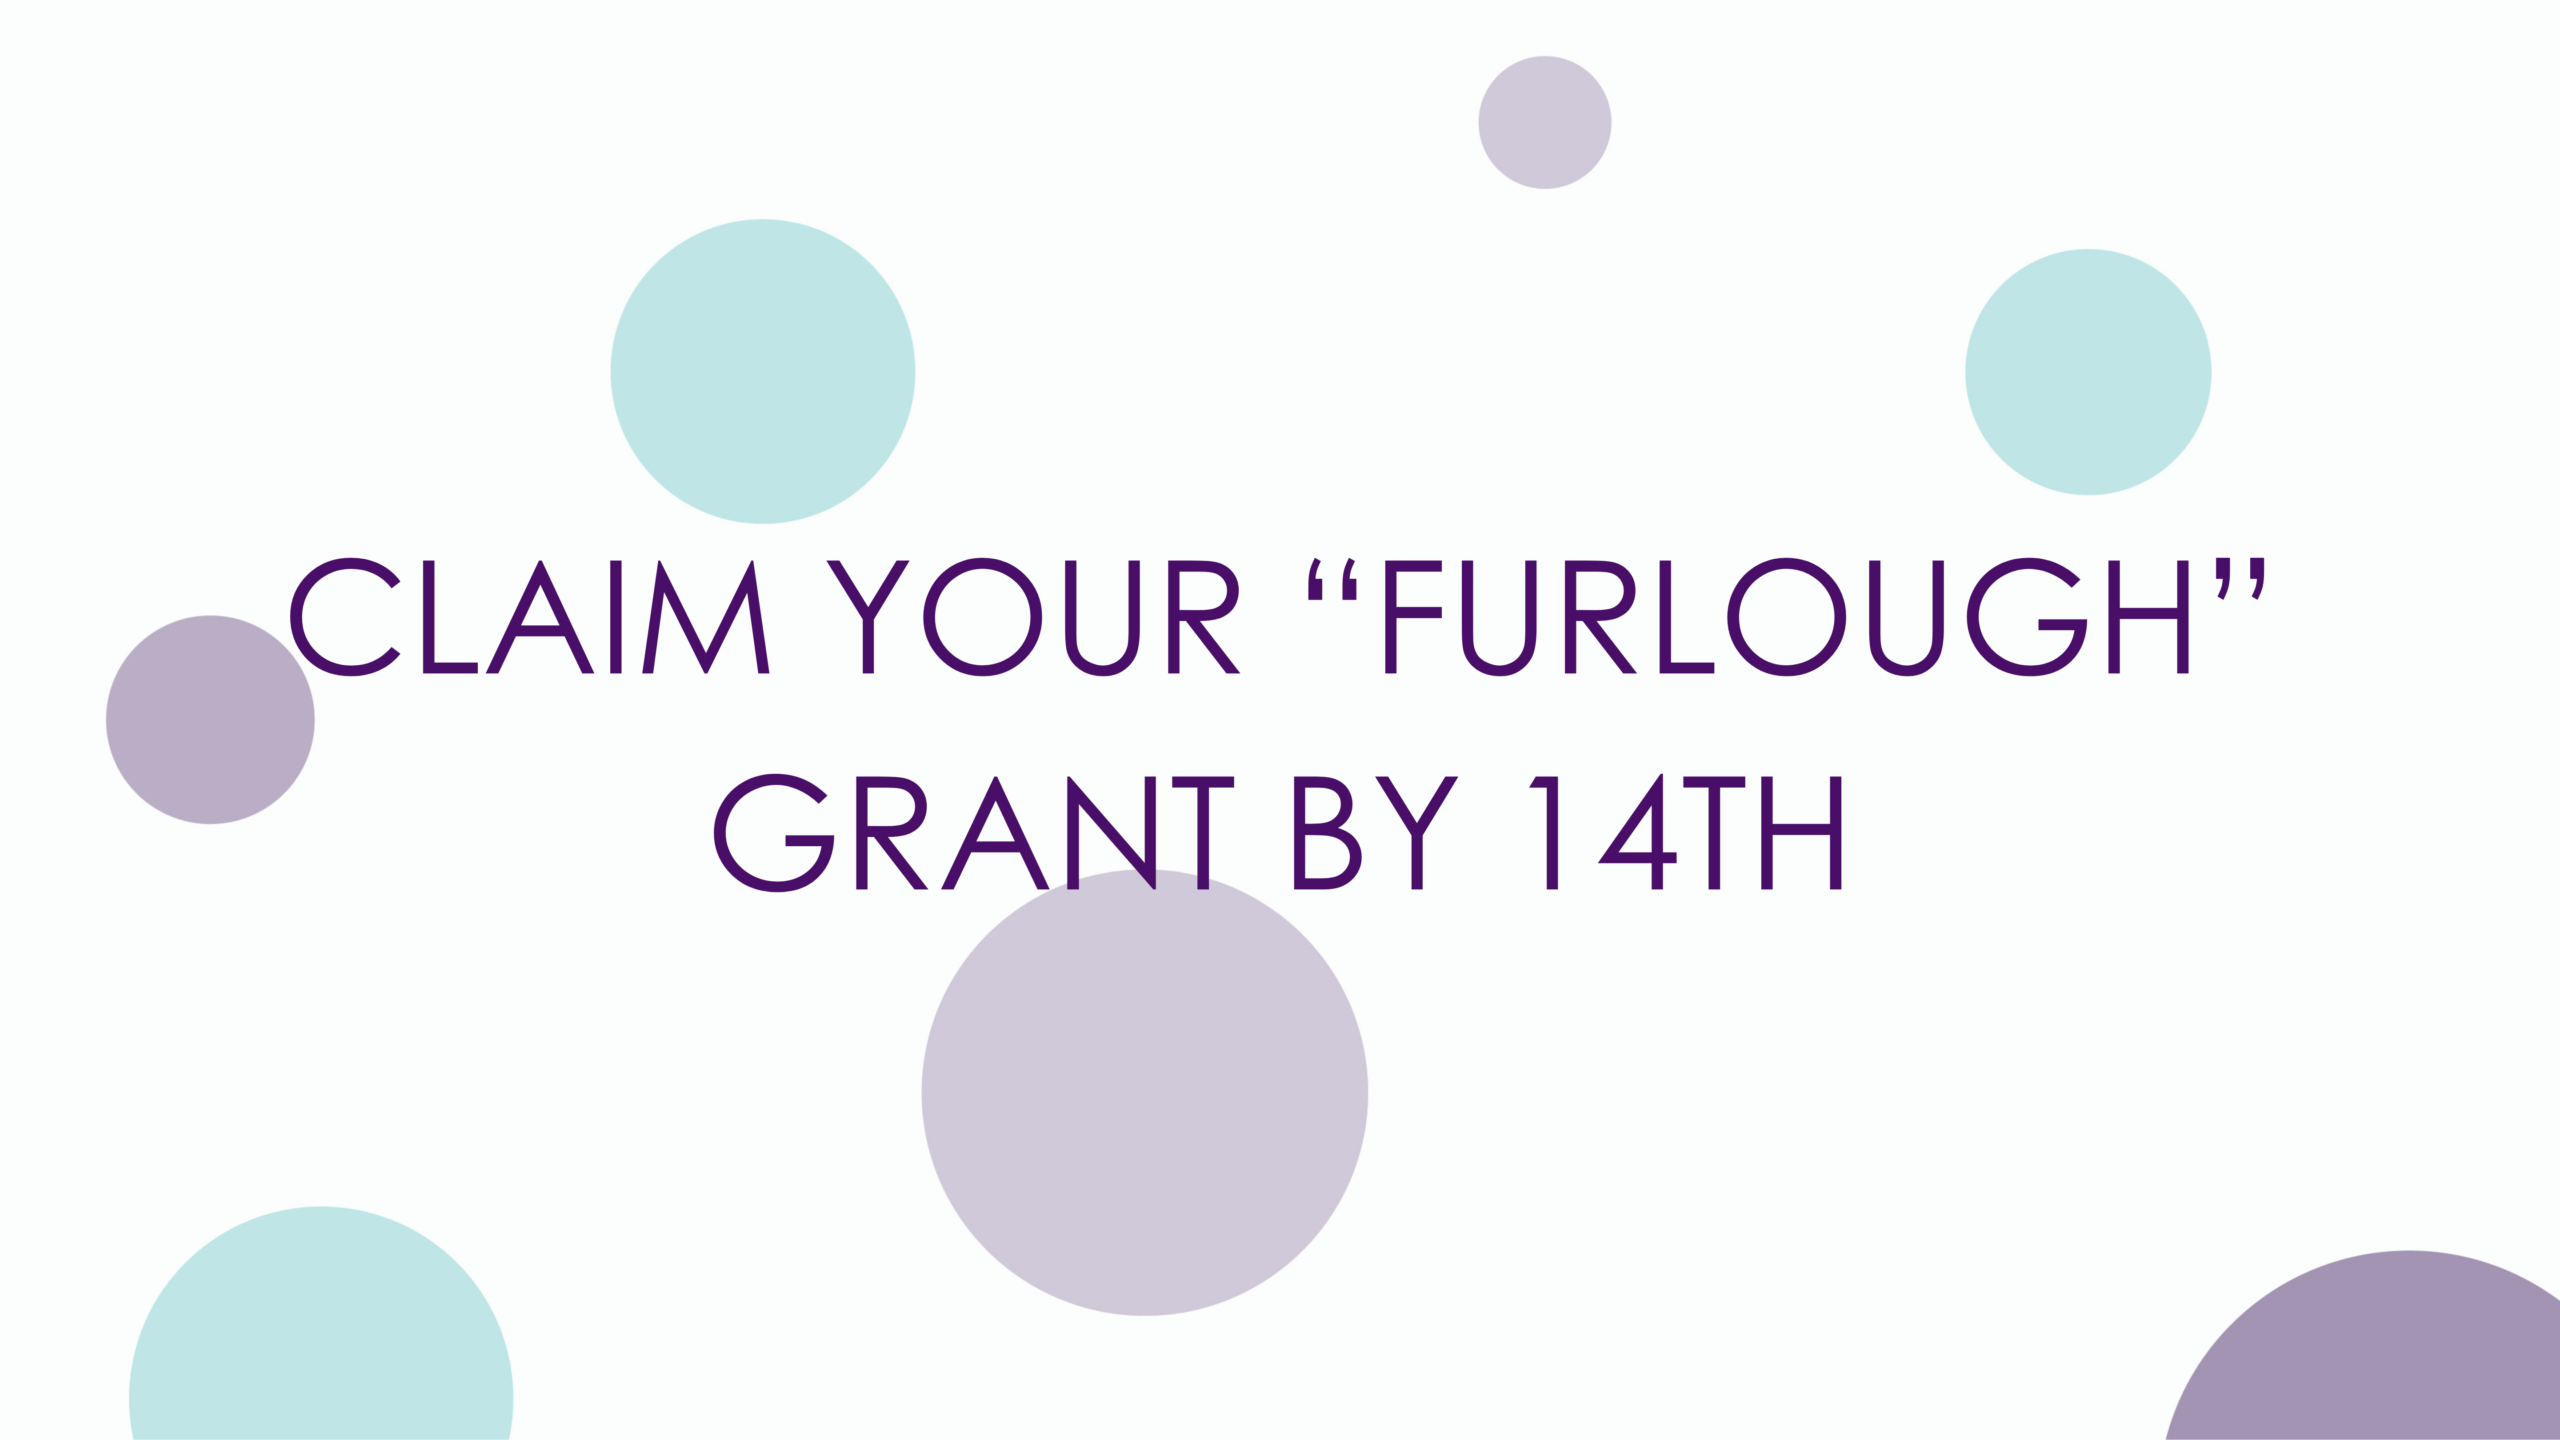 """CLAIM YOUR """"FURLOUGH"""" GRANT BY 14TH"""